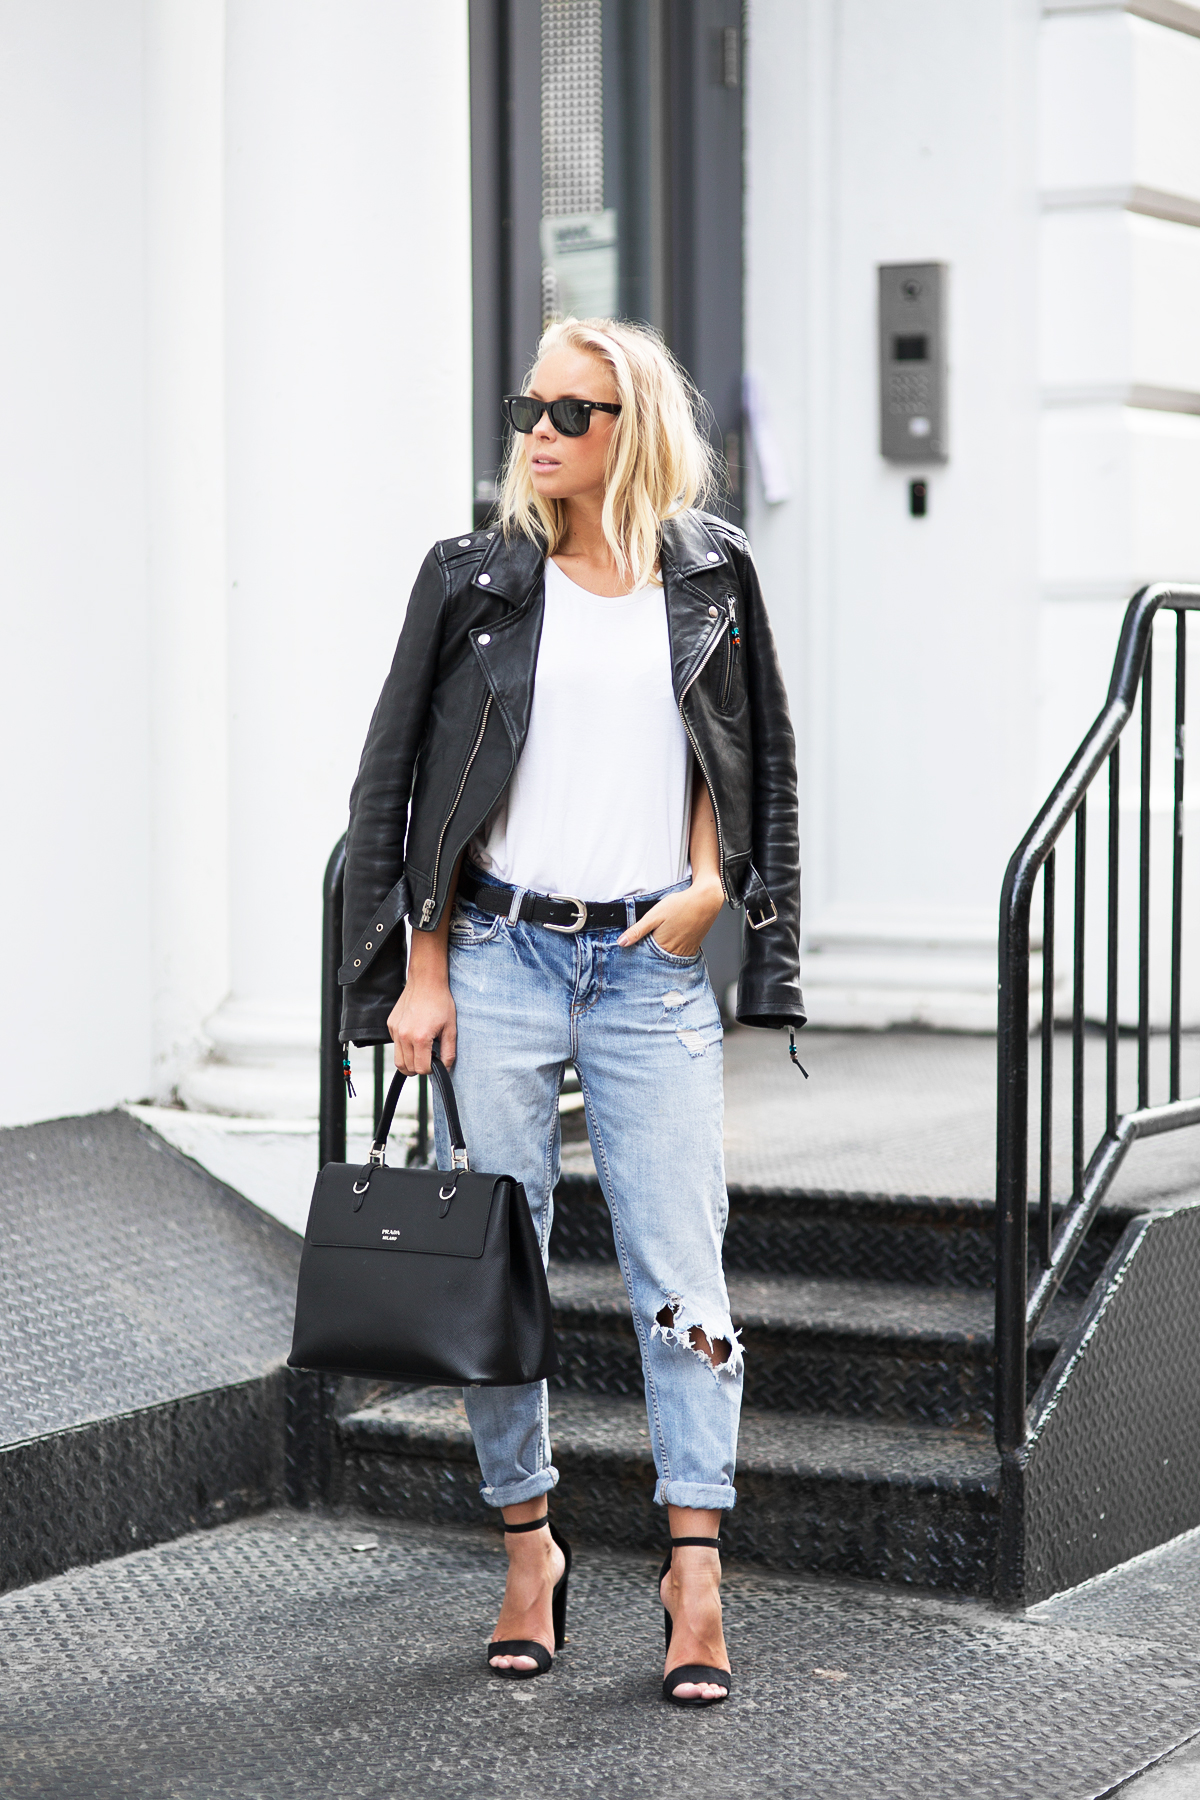 Street Style, Fashion 2015: Victoria Tornegren is wearing a leather BLK DNM biker jacket with a pair of denim Gina Tricot jeans, black NLY heels and a Prada handbag